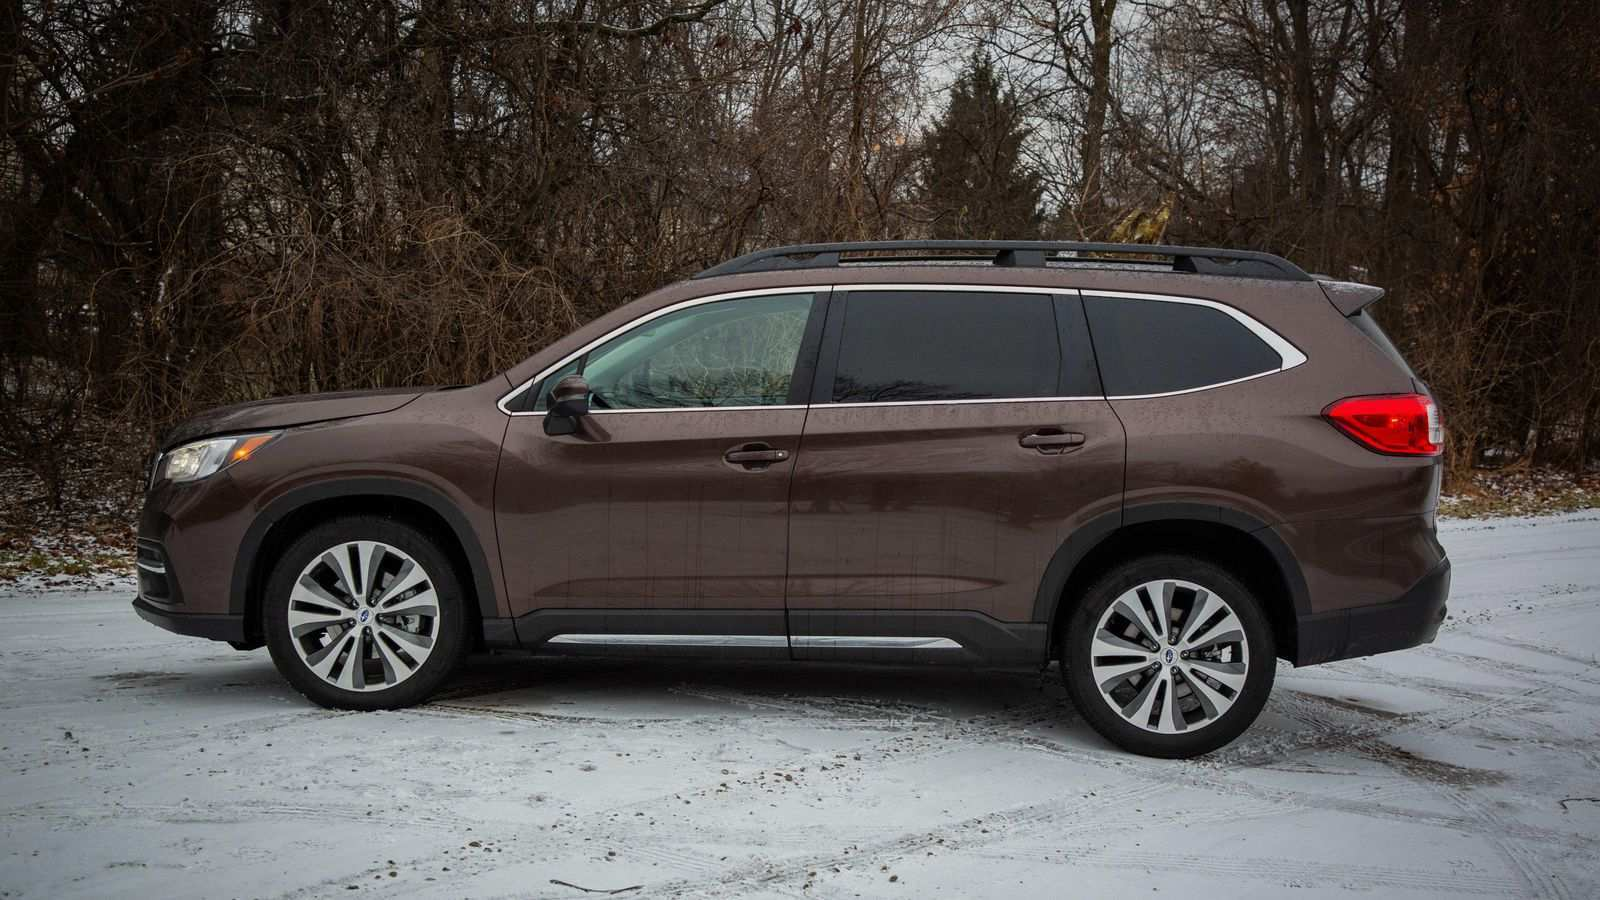 11 All New Subaru Ascent 2020 Price